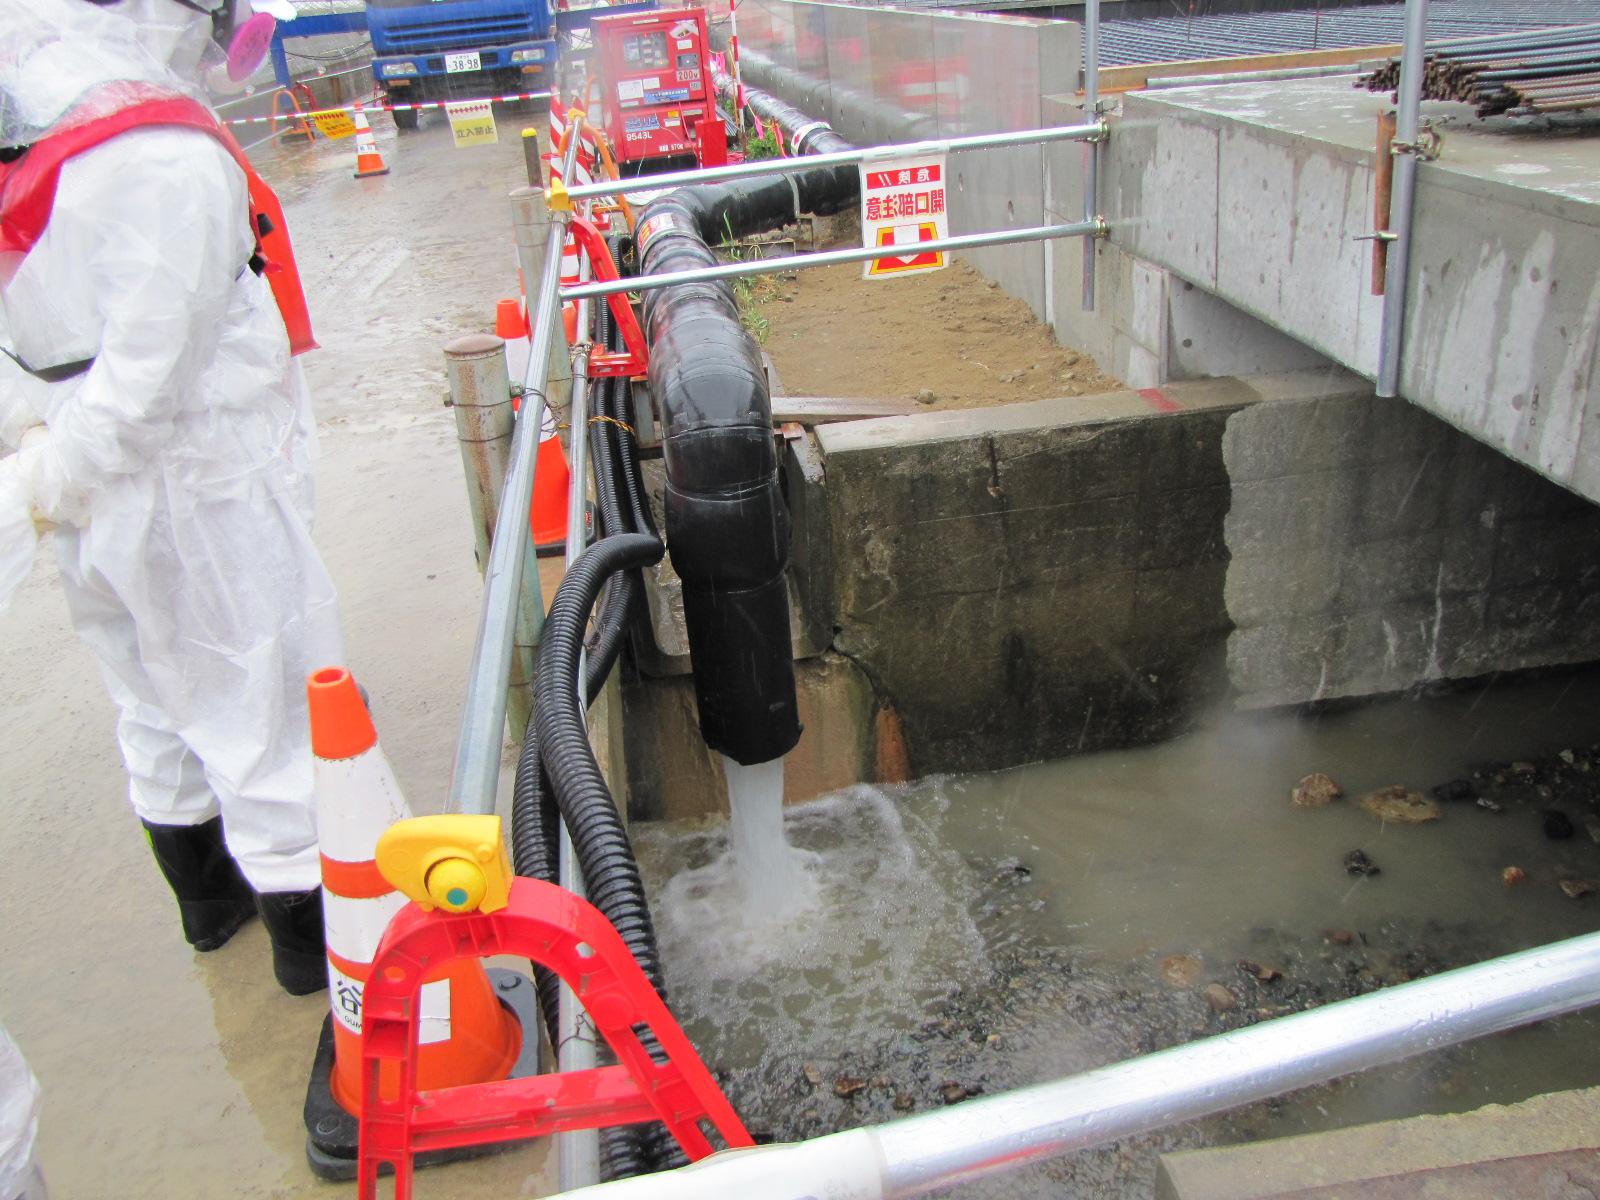 TEPCO says groundwater bypass operations not having effect at Fukushima Daiichi | Enformable